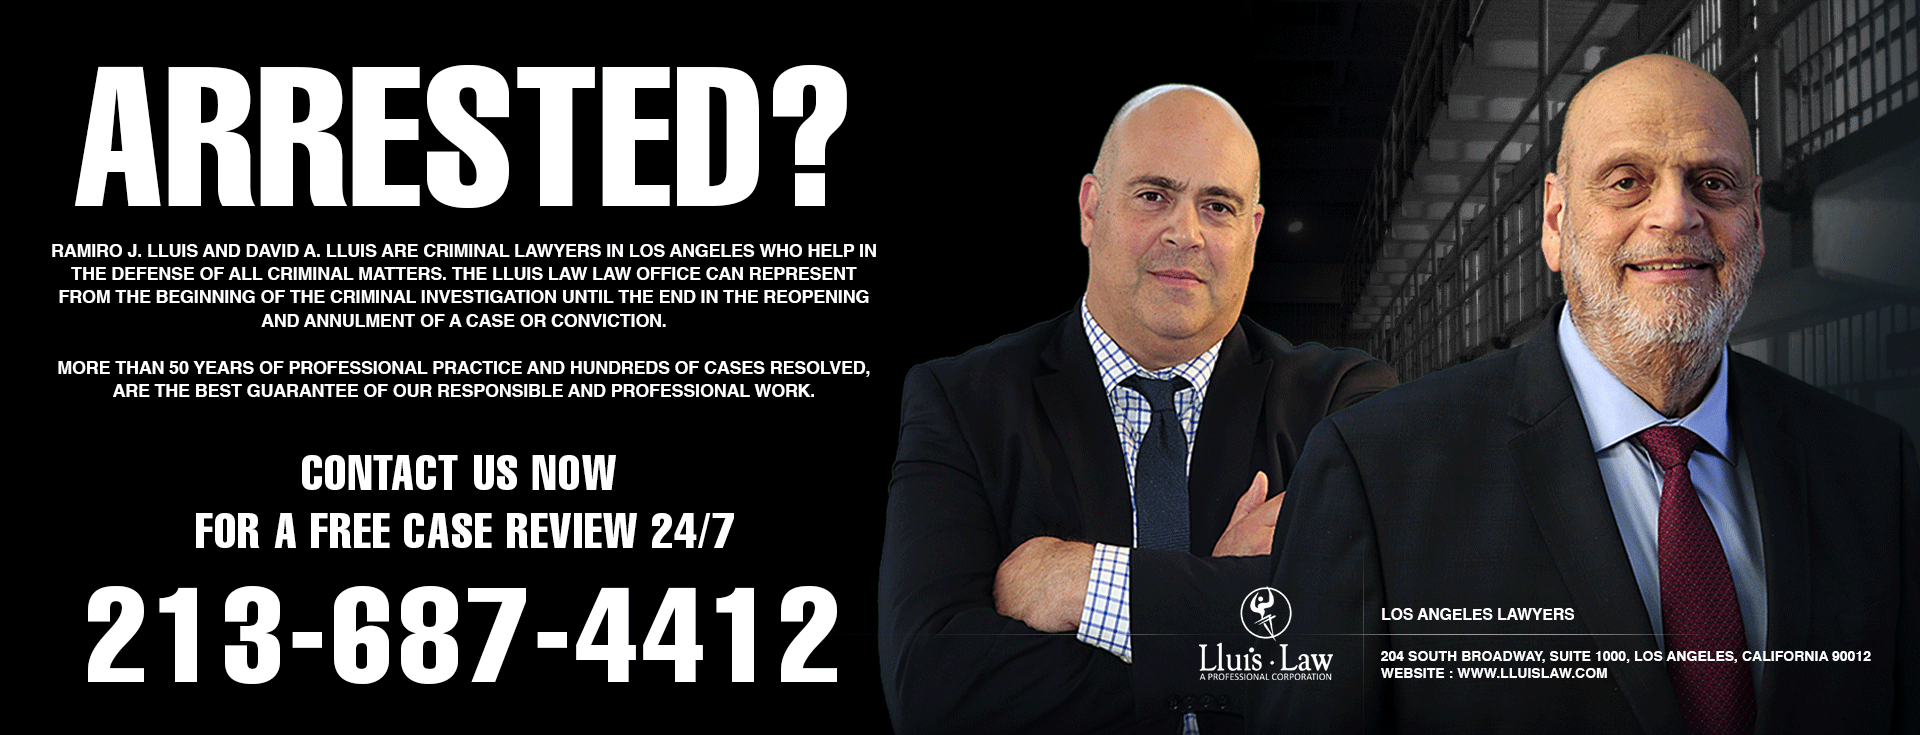 Los Angeles Defense Lawyers